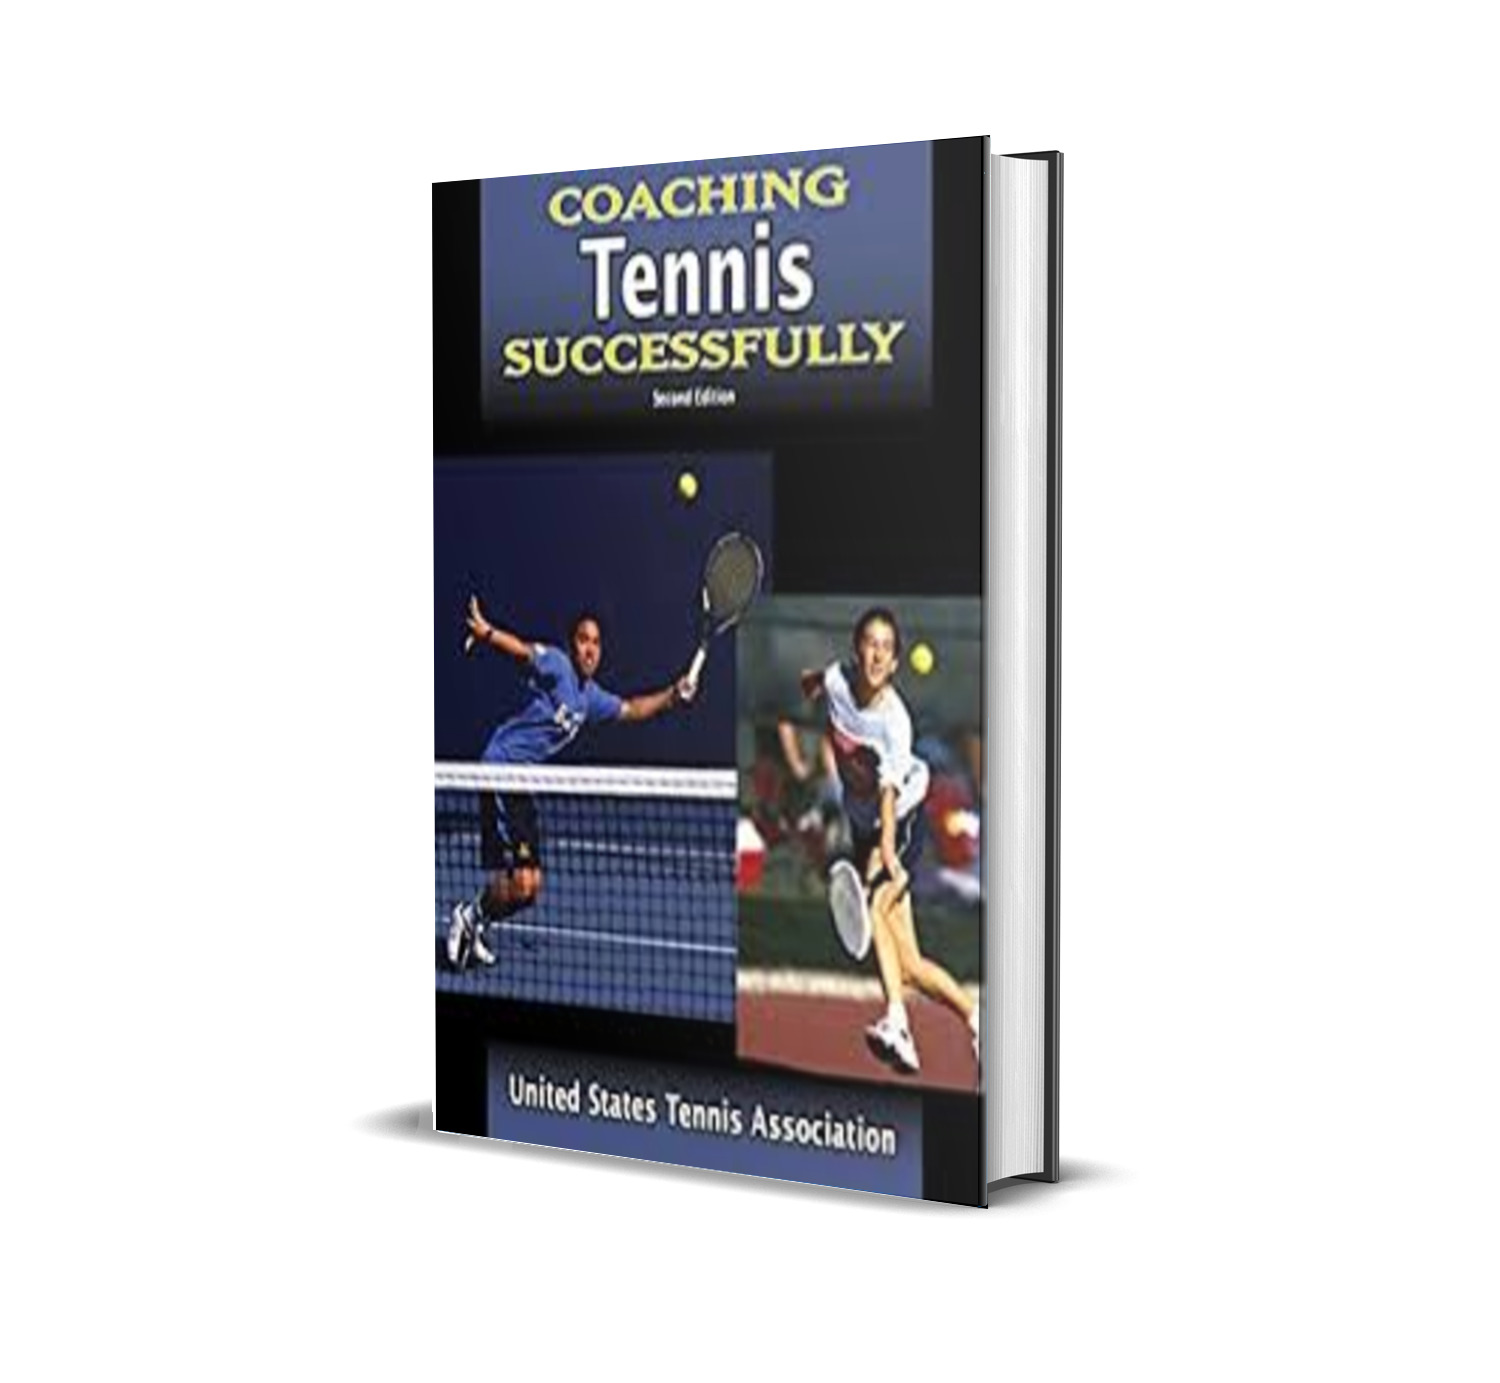 COACHING TENNIS SUCCESFULLY-United States Tennis Association